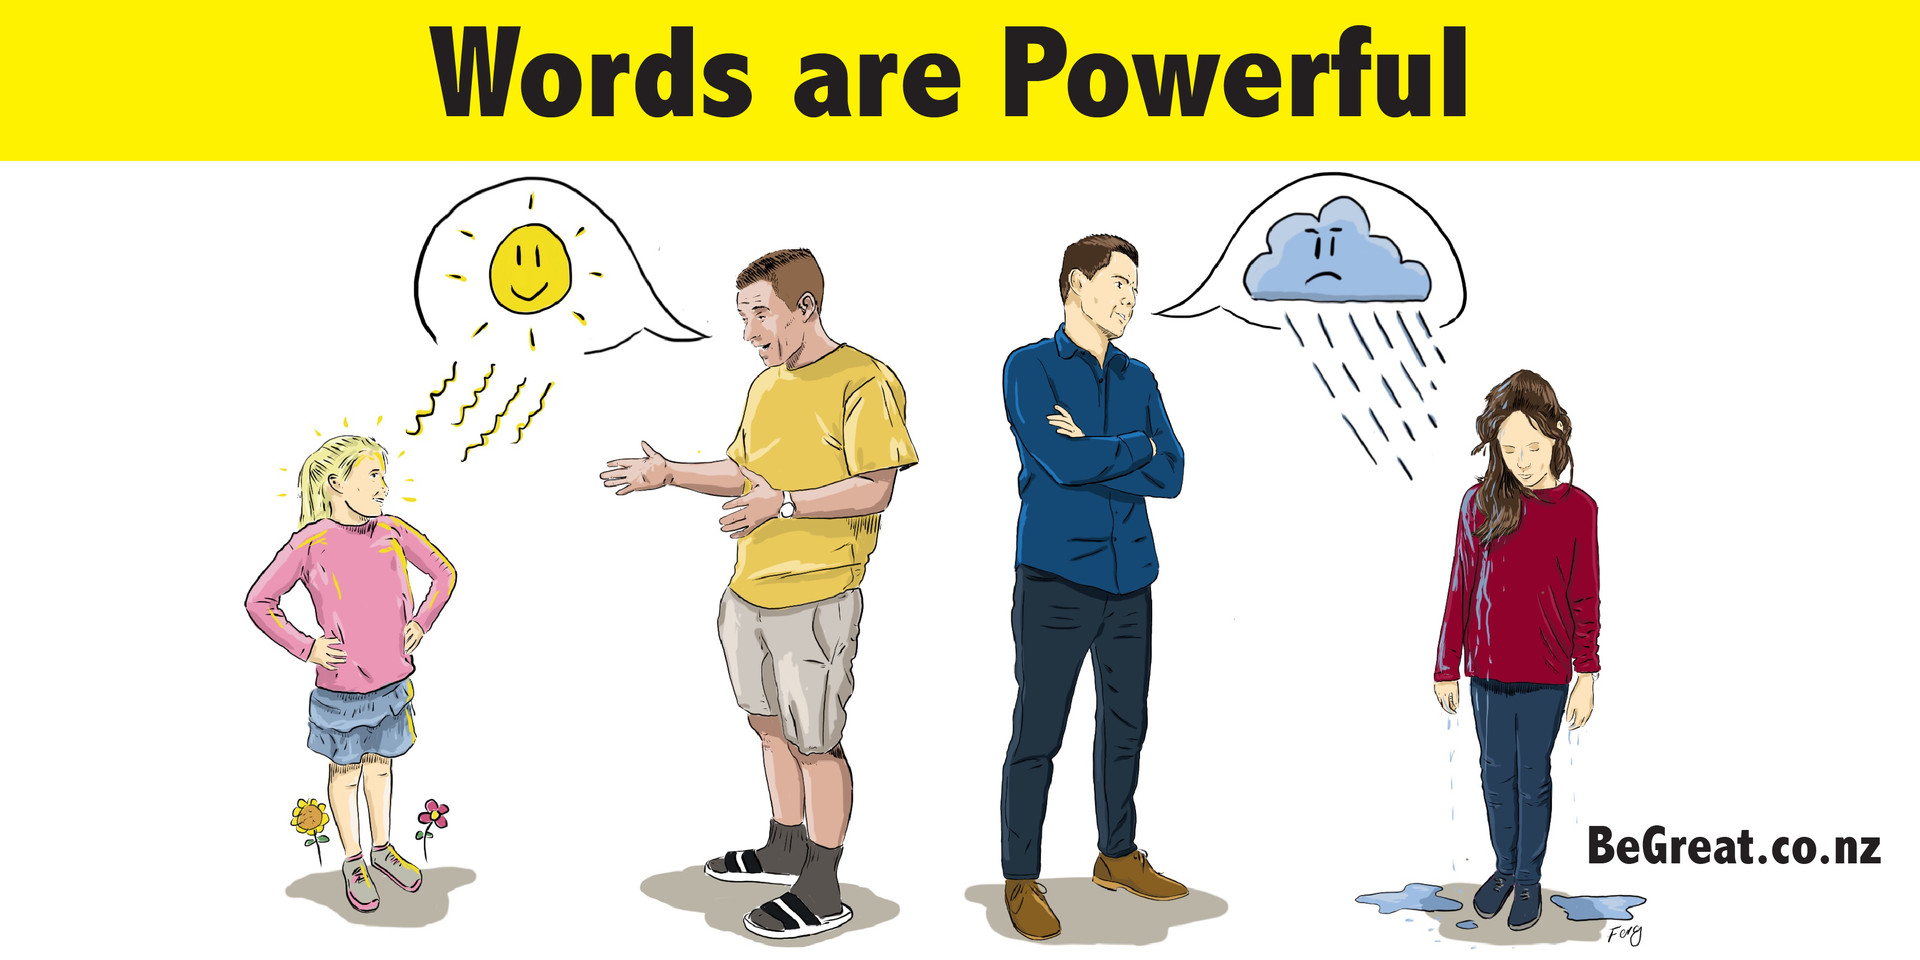 Words are powerful-01.jpg